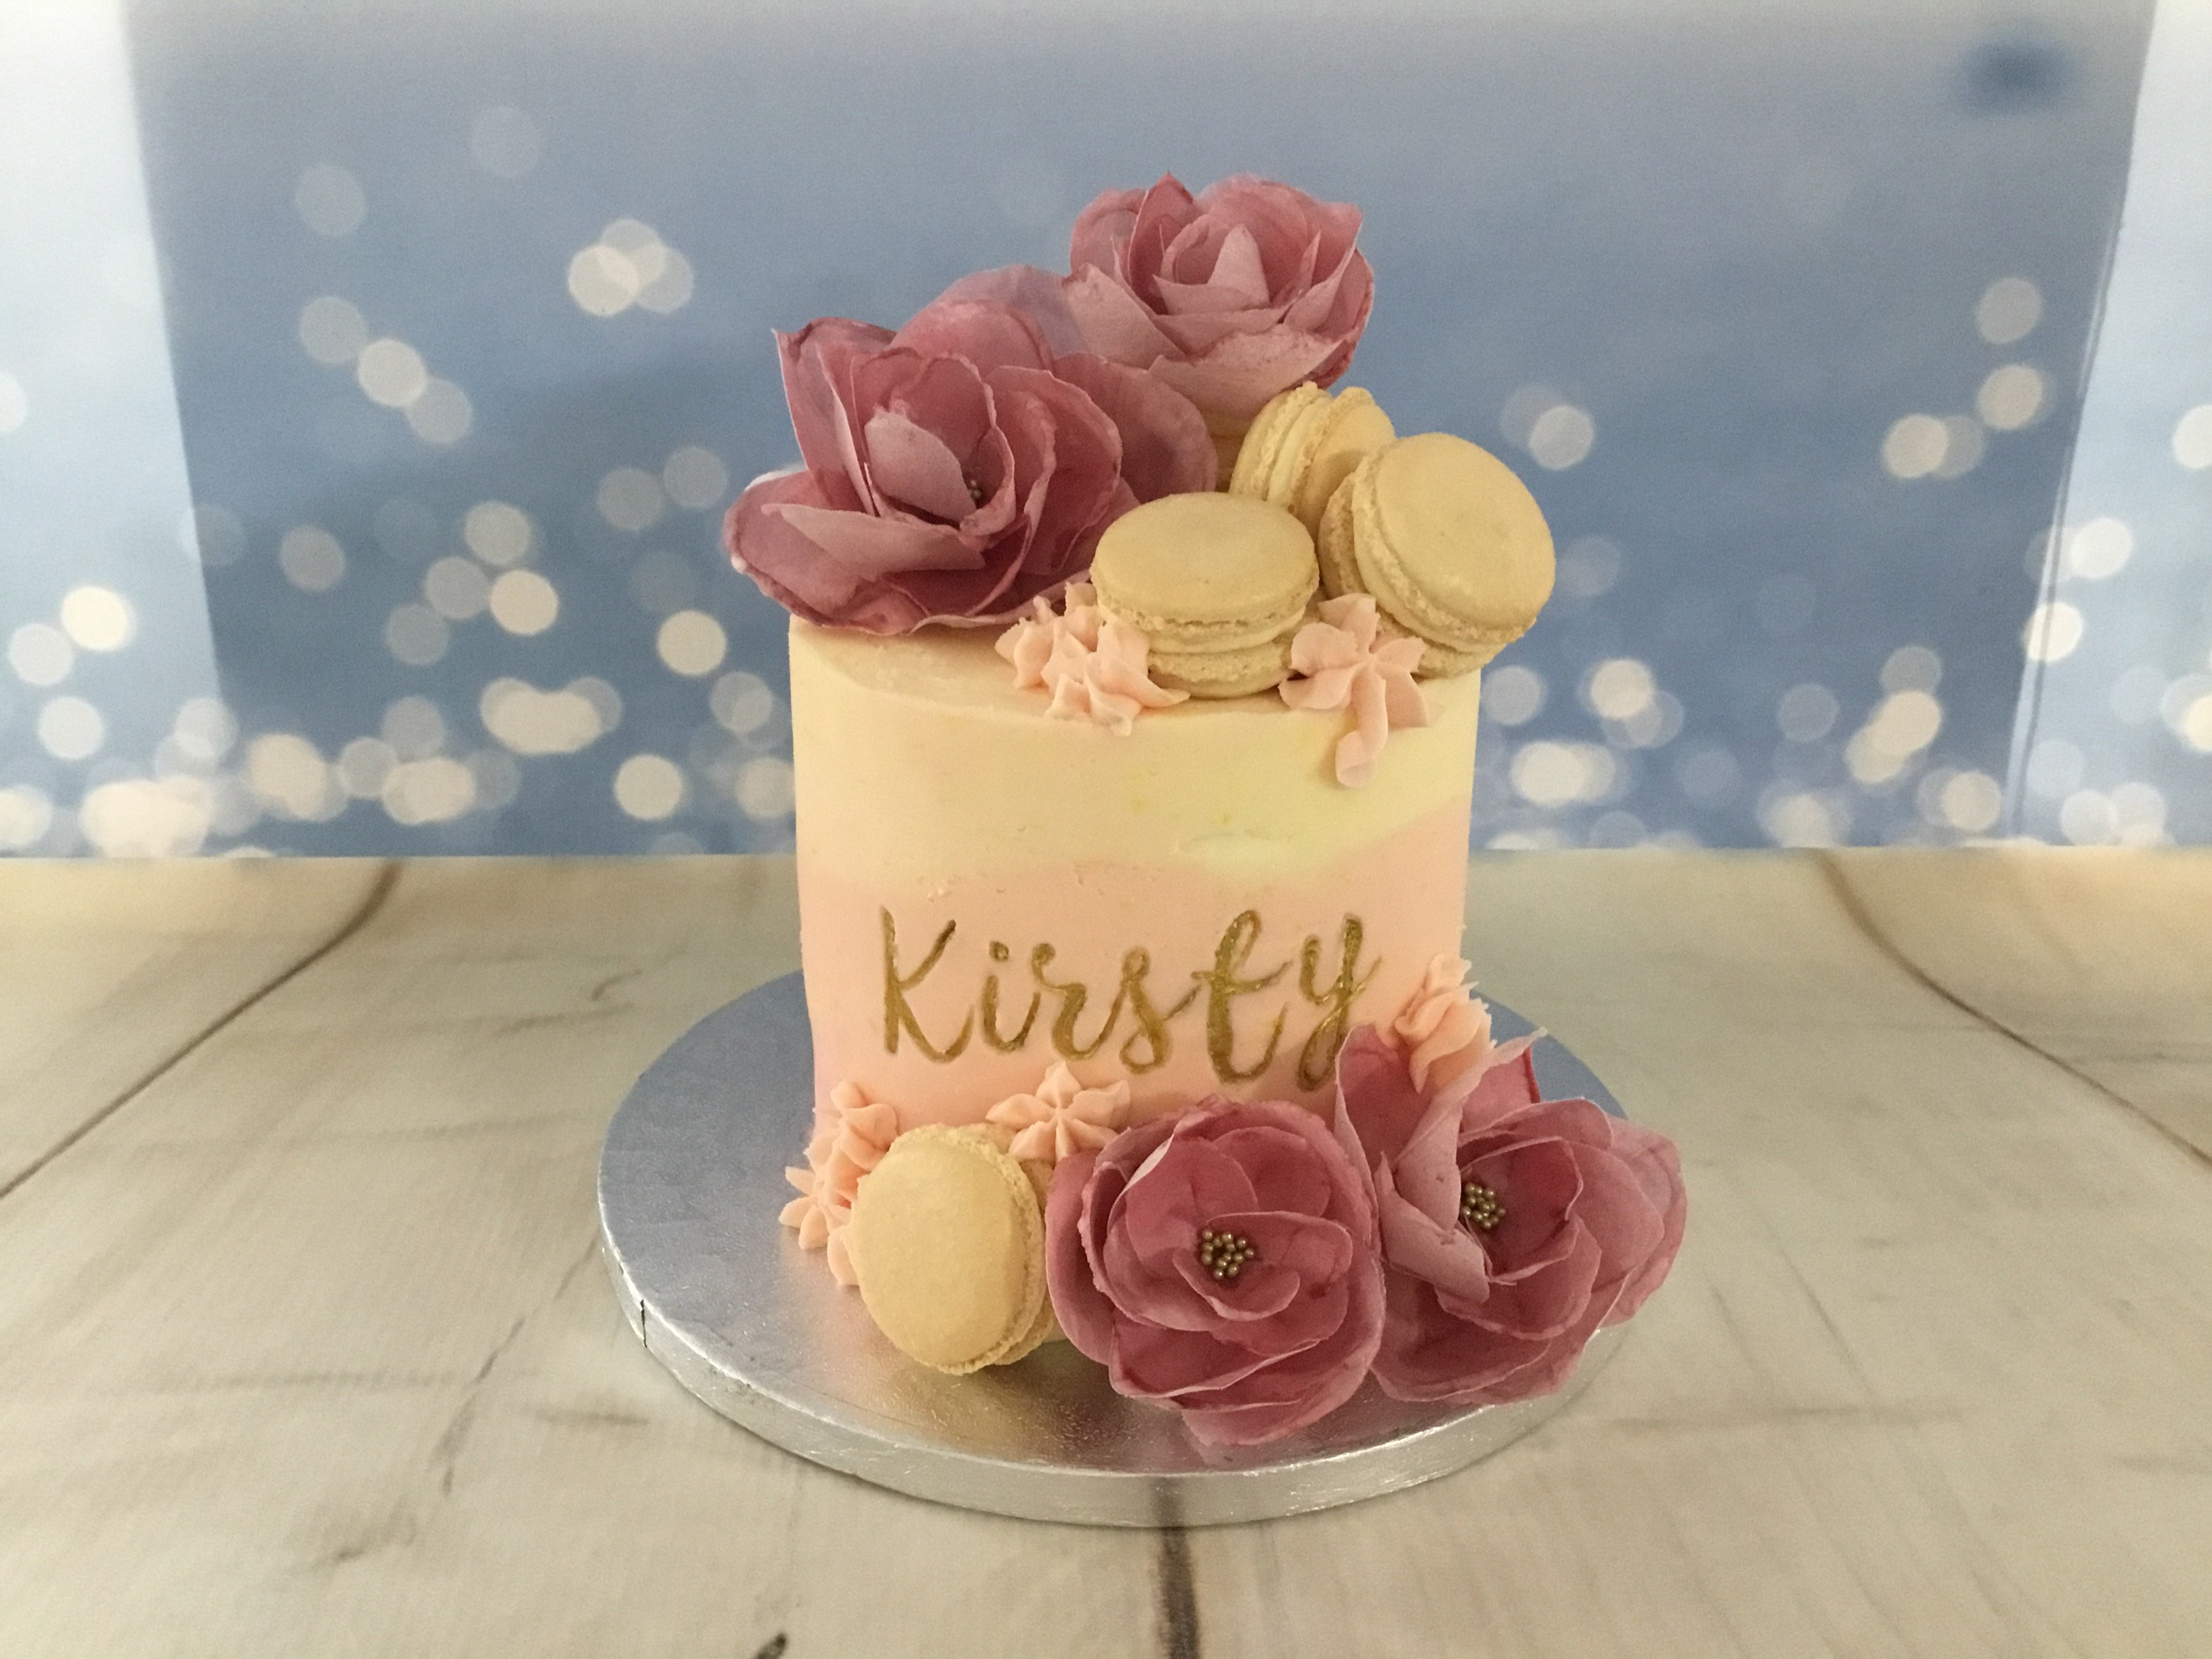 Wafer paper flowers with macarons